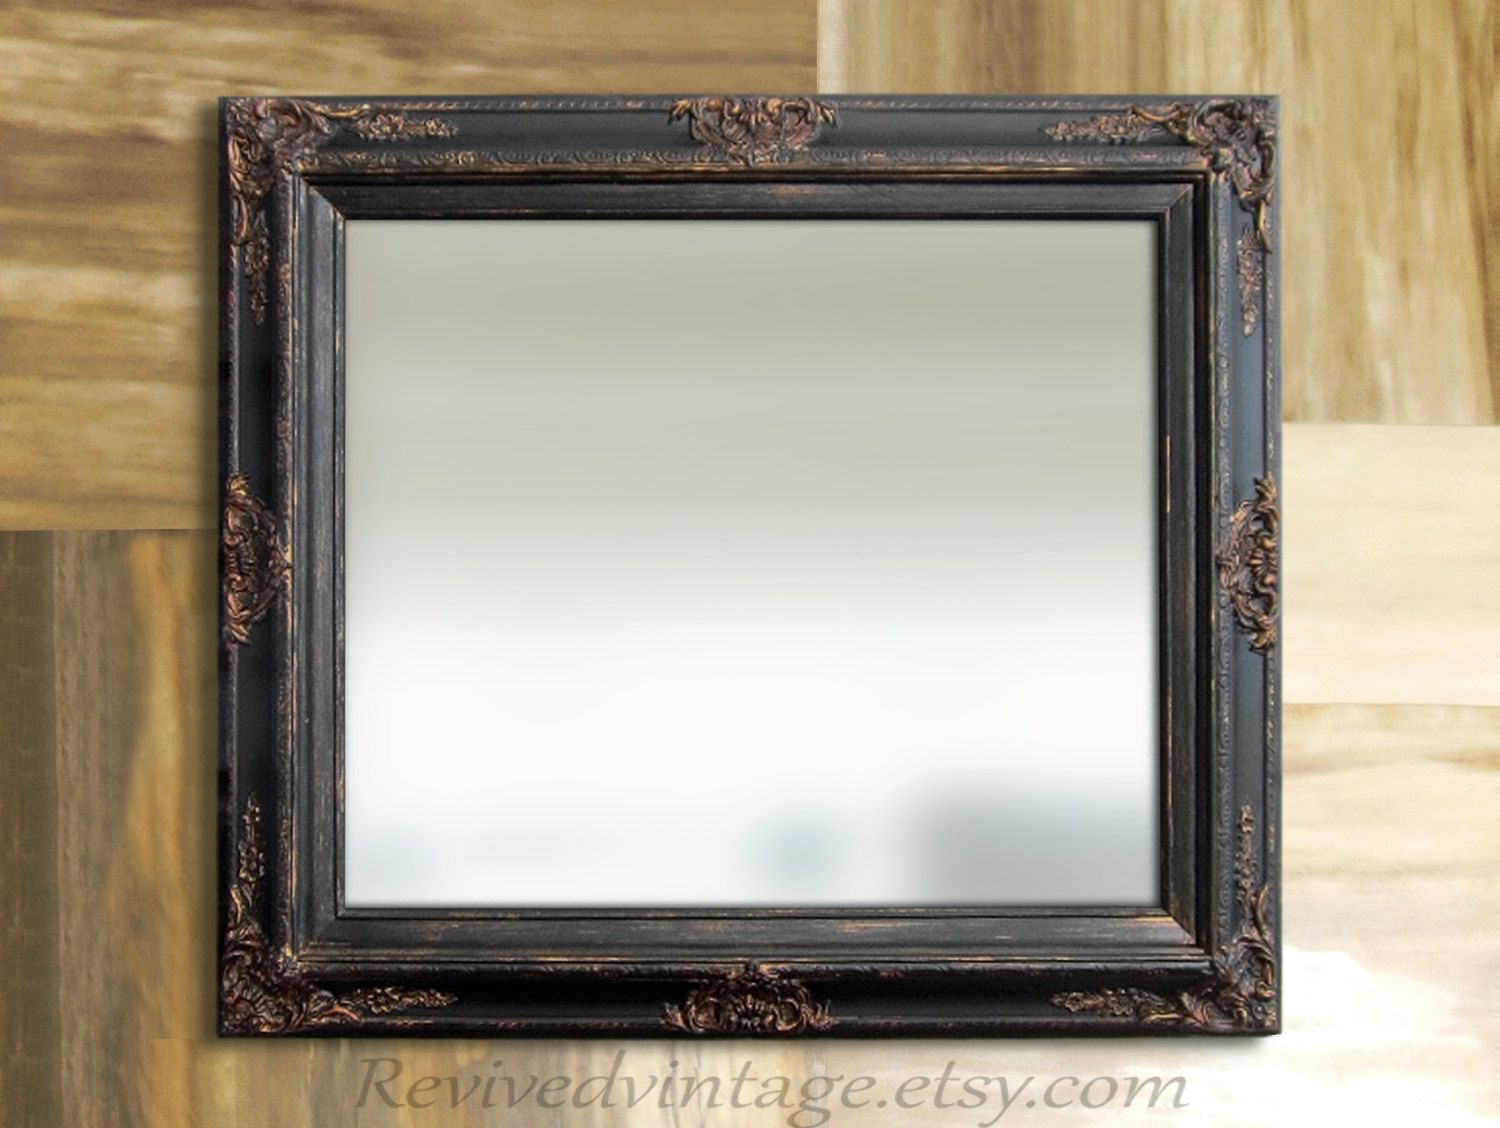 Decorative Bathroom Mirrors Sale Black Bathroom Mirror For Sale Baroque Decorative Ornate